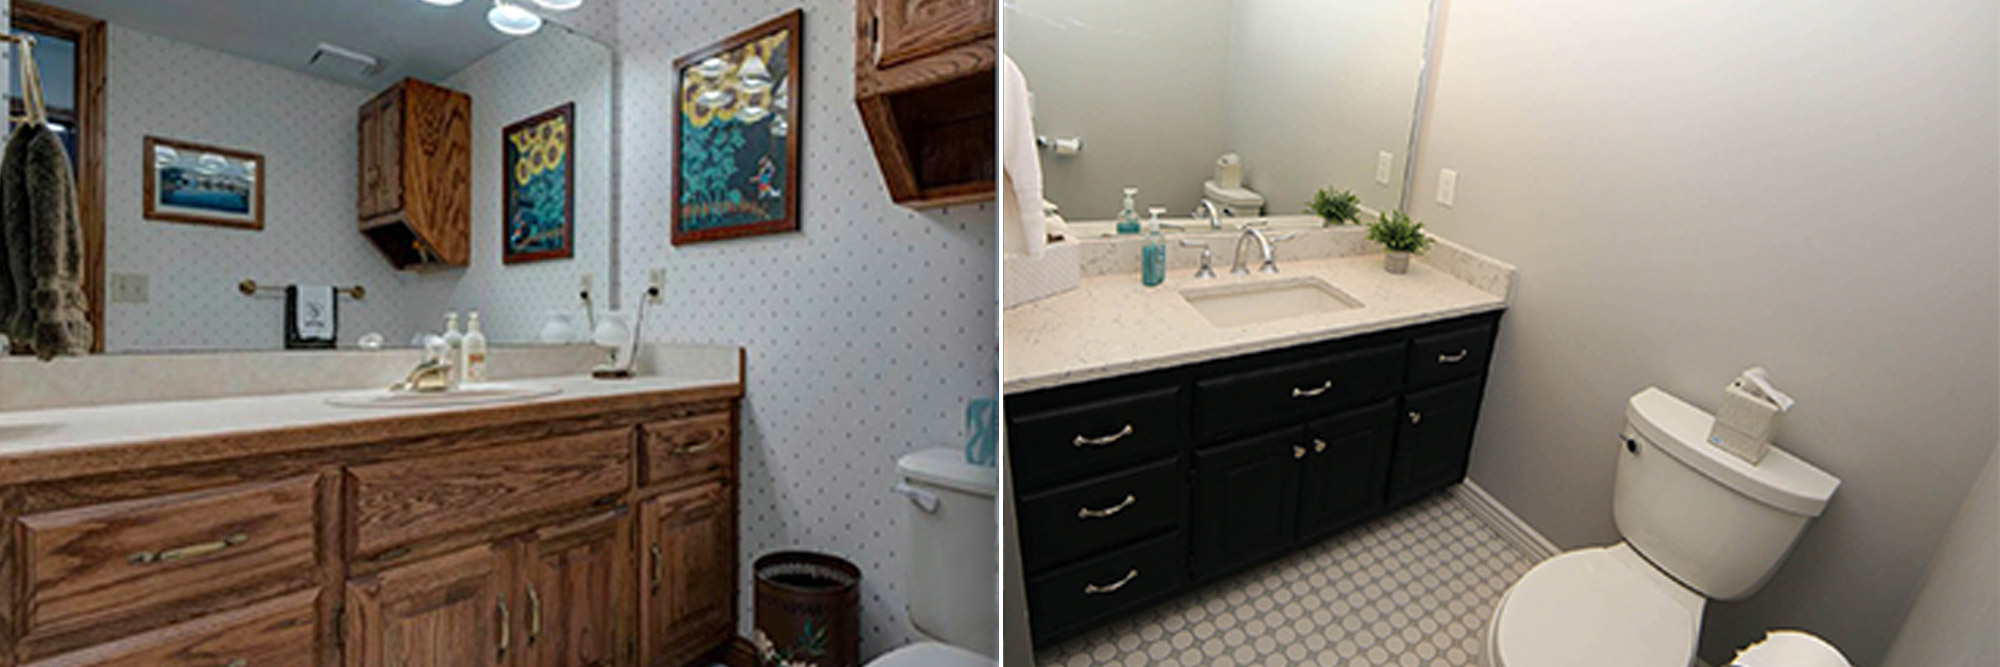 Bath Cabinets - Before & After